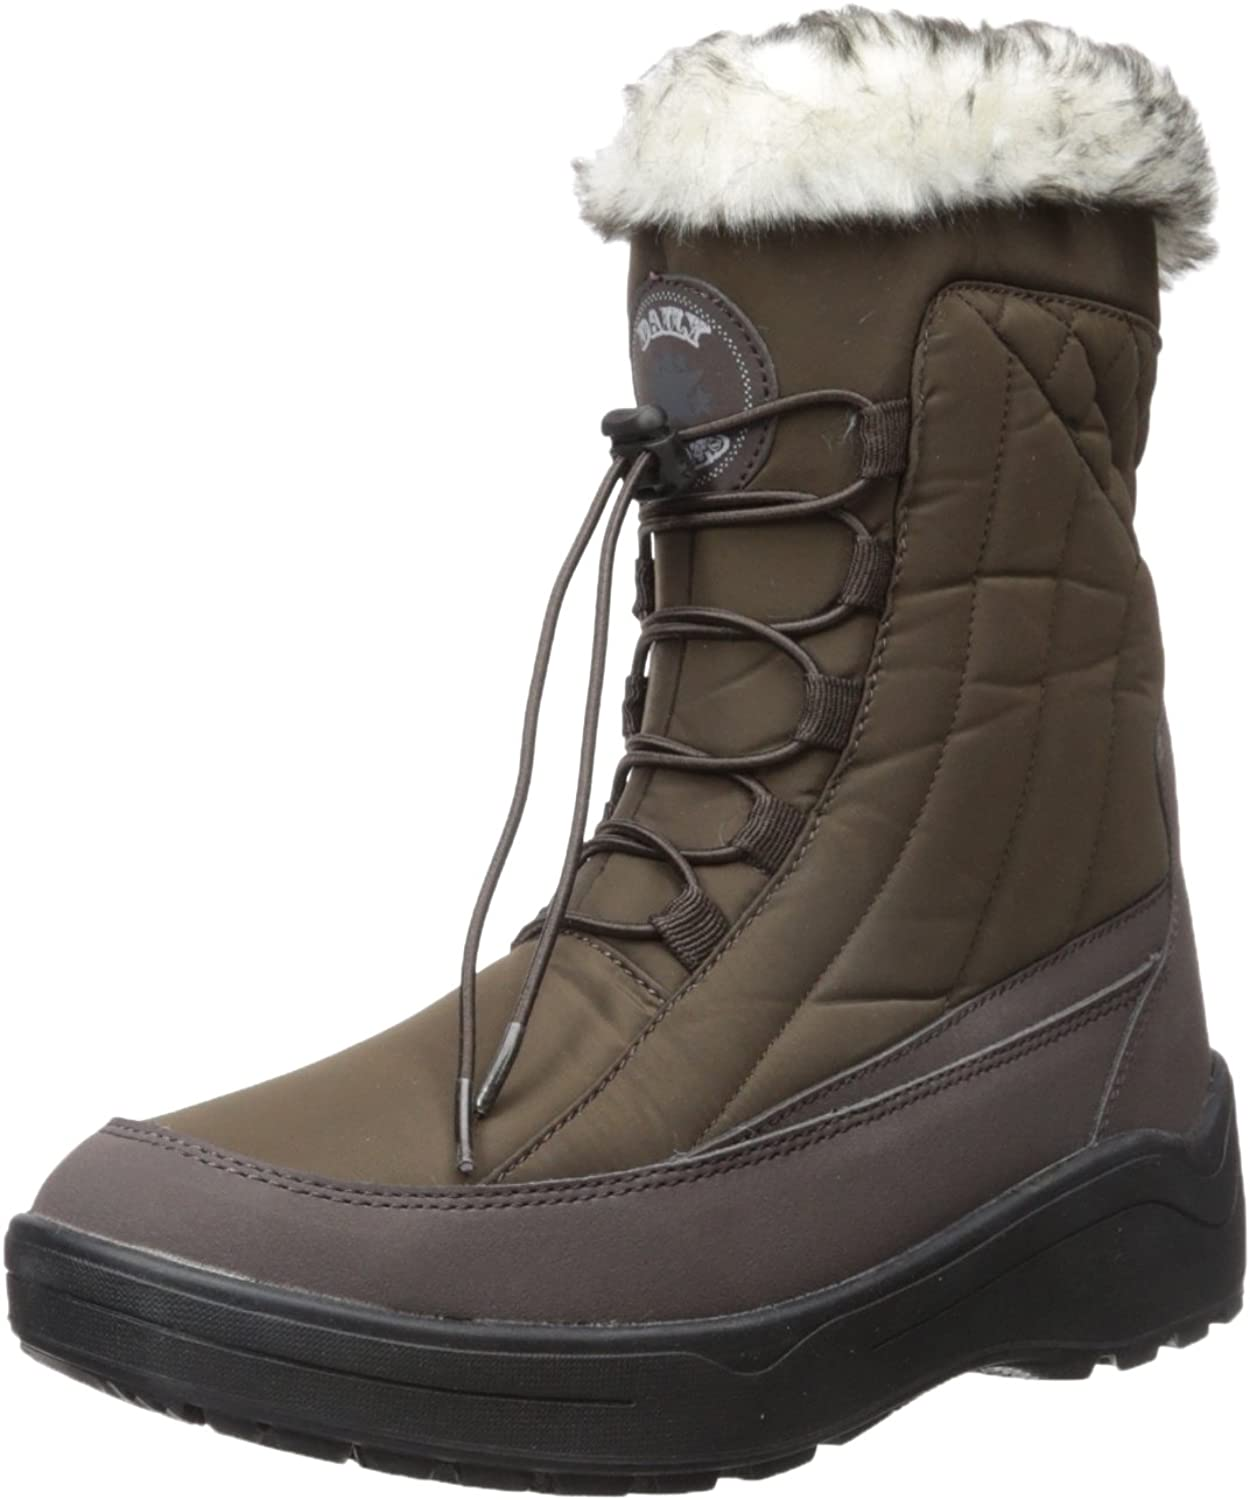 Dailyshoes Woman's Ankle High Lace Up Warm Water Resistant Eskimo Snow Boots